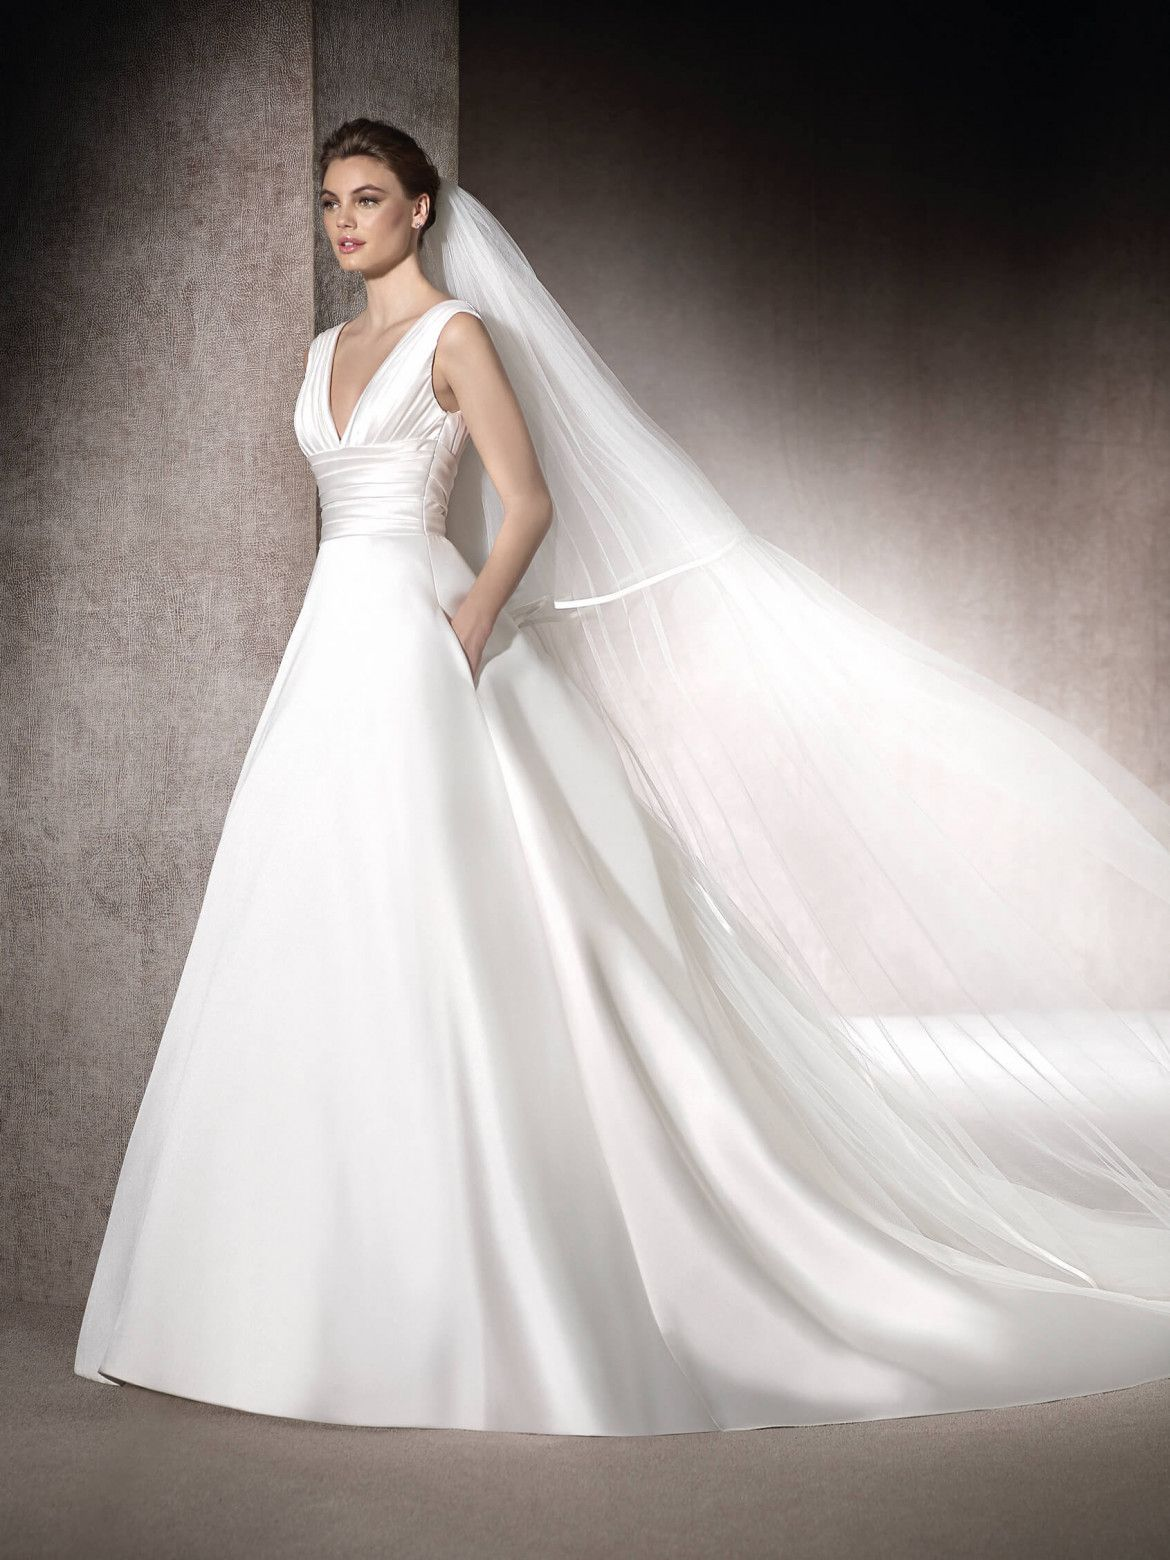 Princess wedding dress Mayo | A Wedding dress | Pinterest | Princess ...